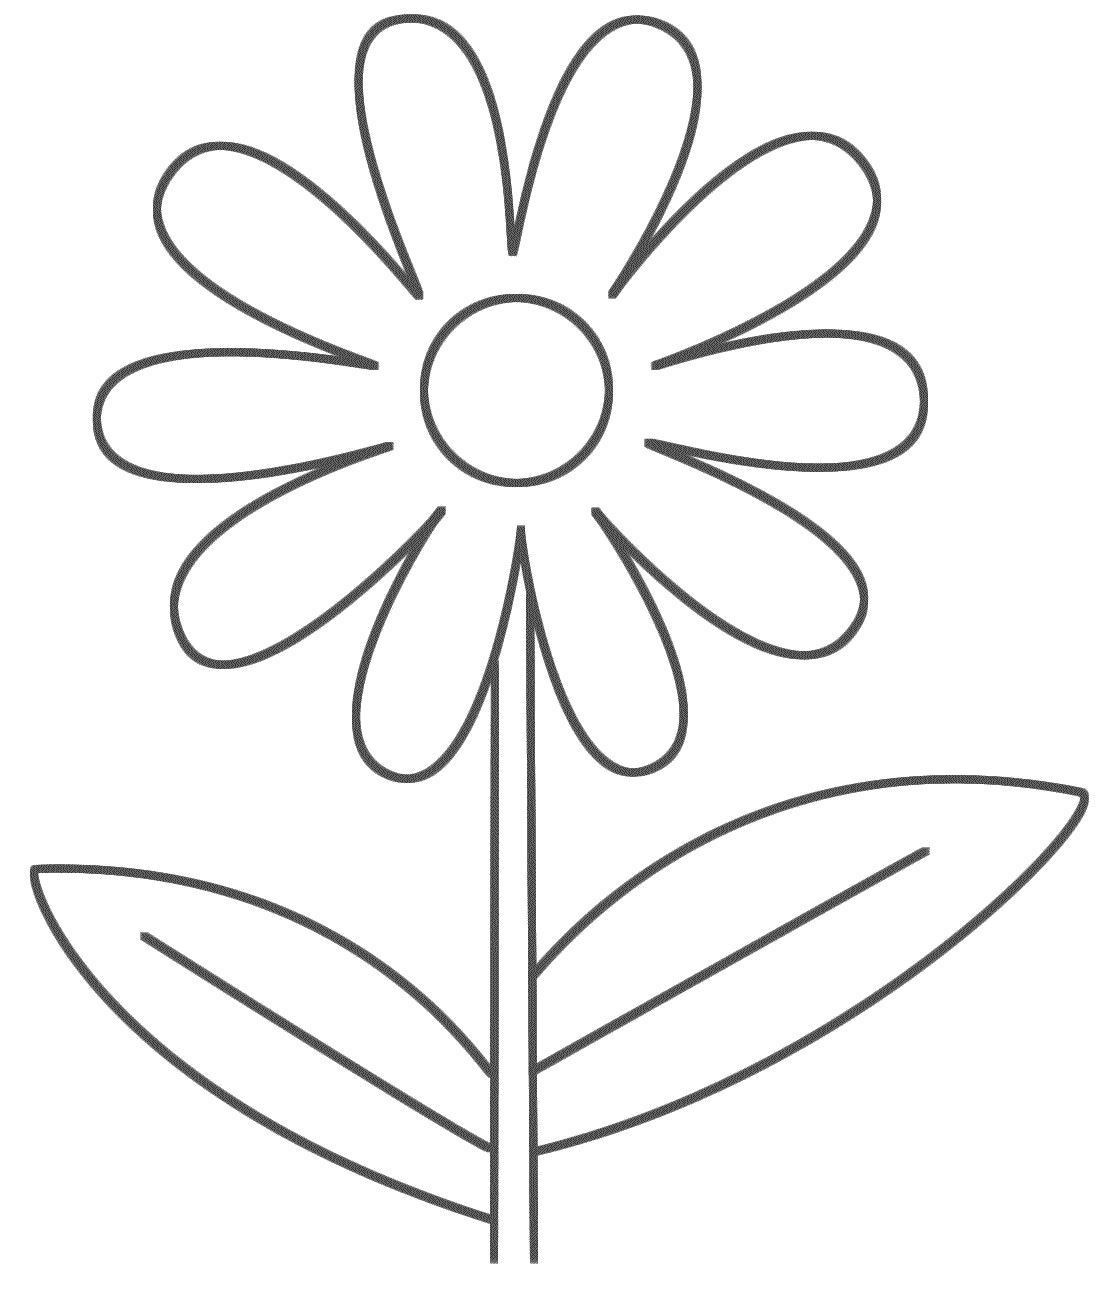 Coloring pages easy